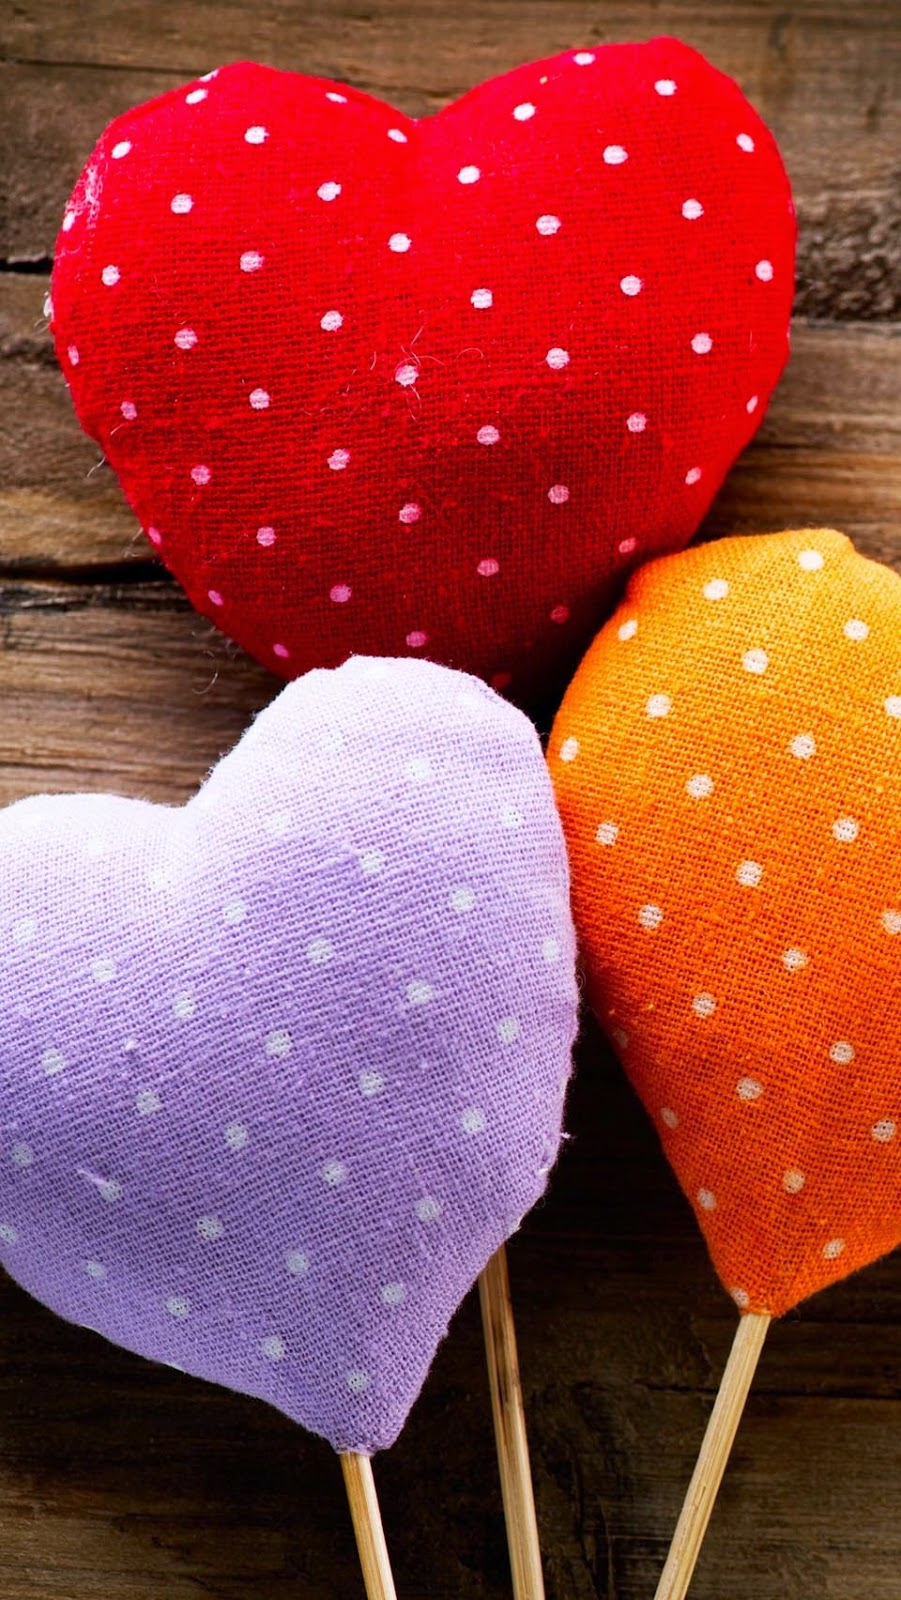 Iphone 6 Plus Wallpaper Colorful Hearts Covers Heat